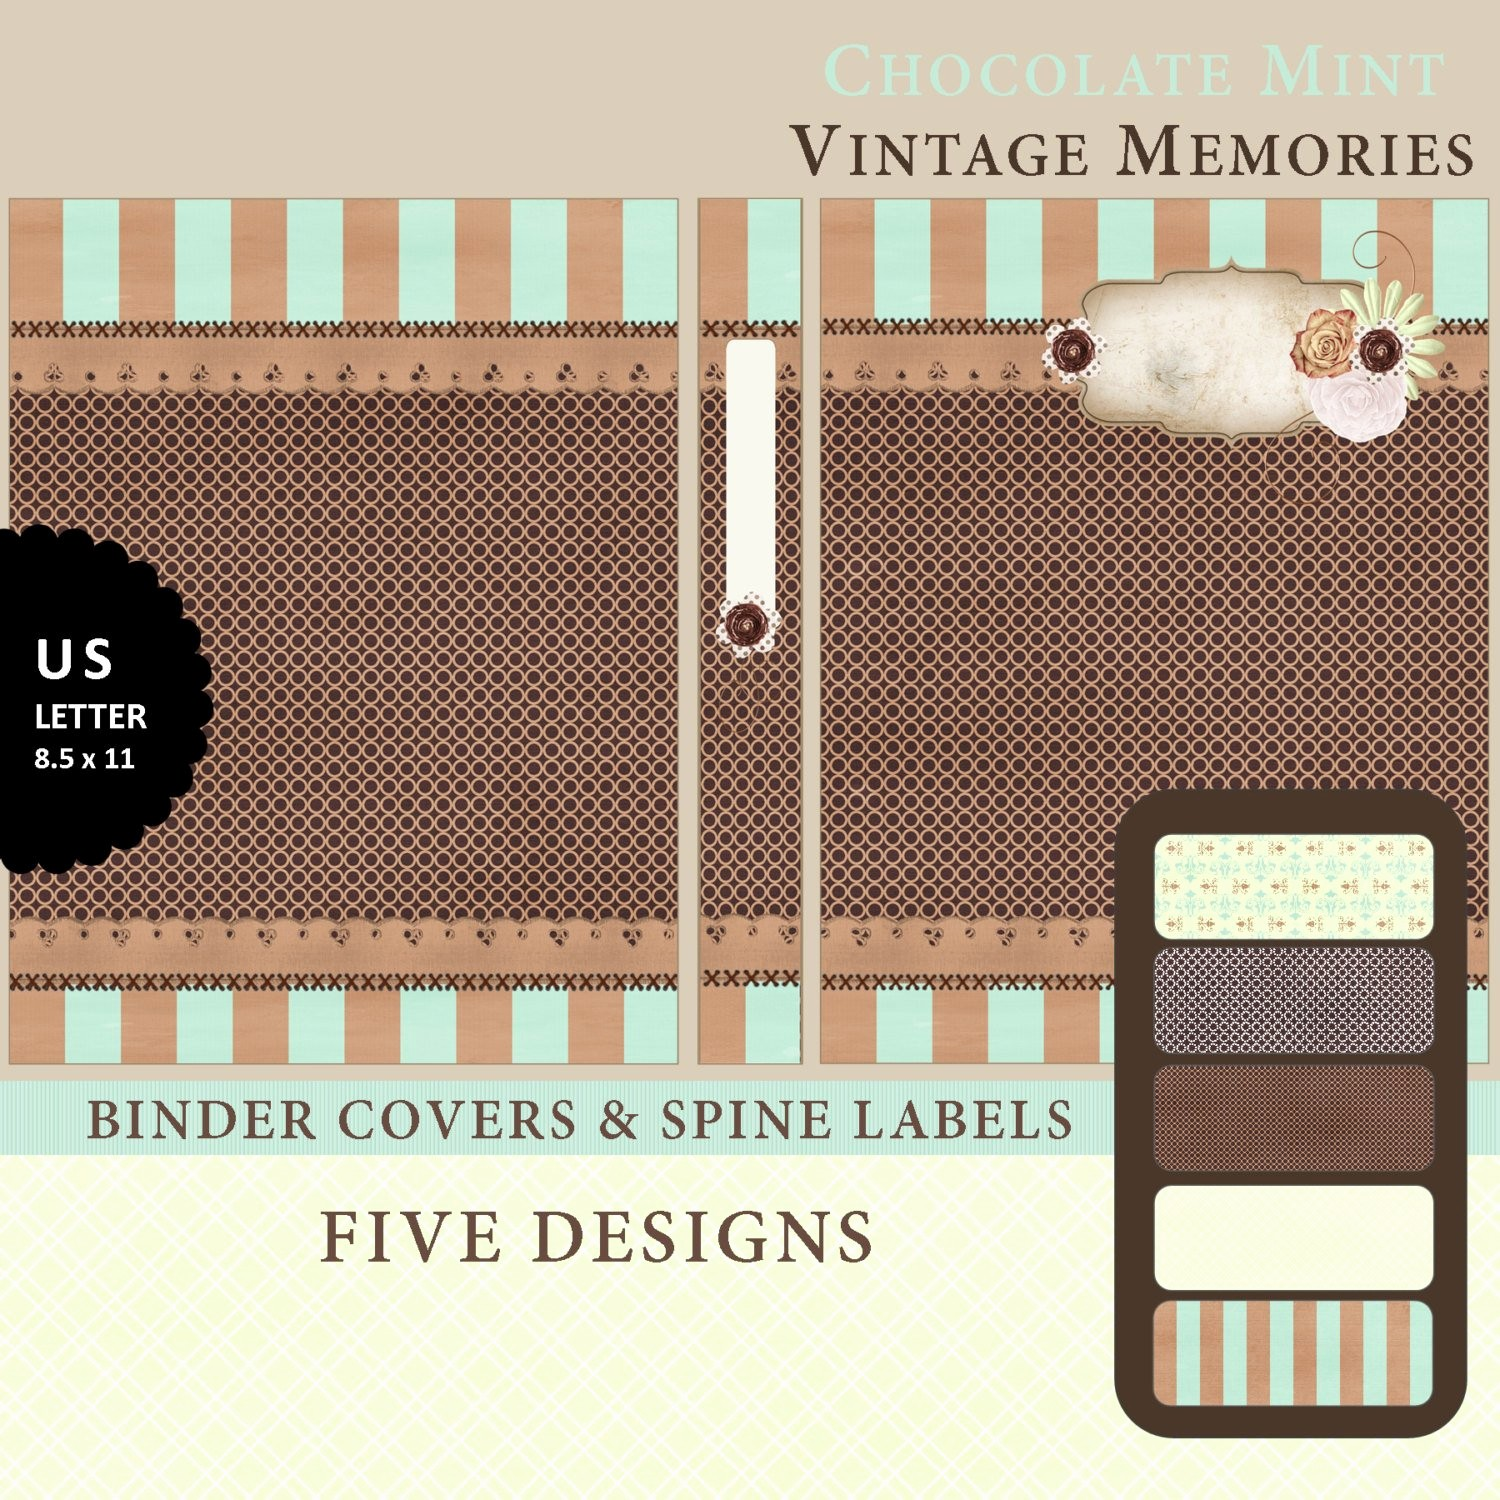 Free Binder Covers and Spines Luxury Printable Binder Covers & Spine Label Inserts by